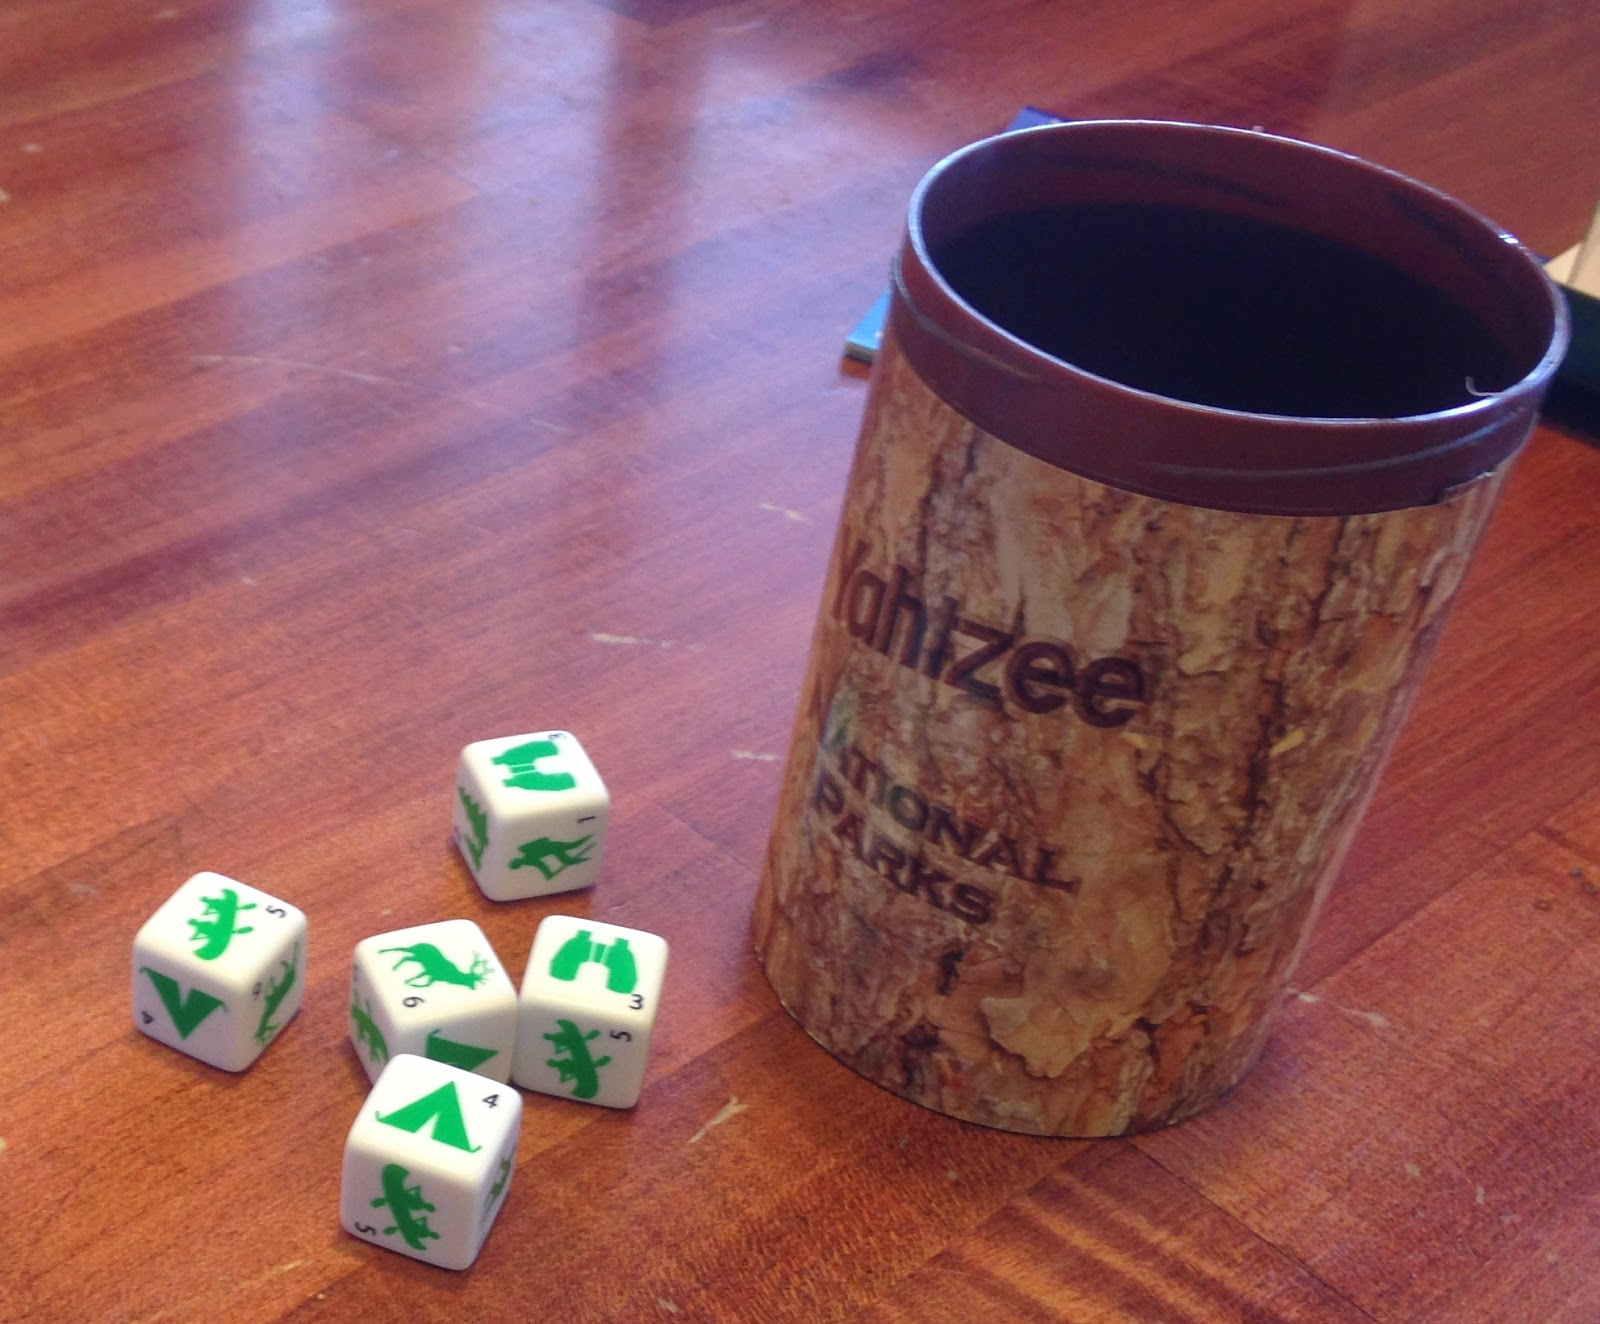 National Parks Dice, Alternate Dice, Camping Dice